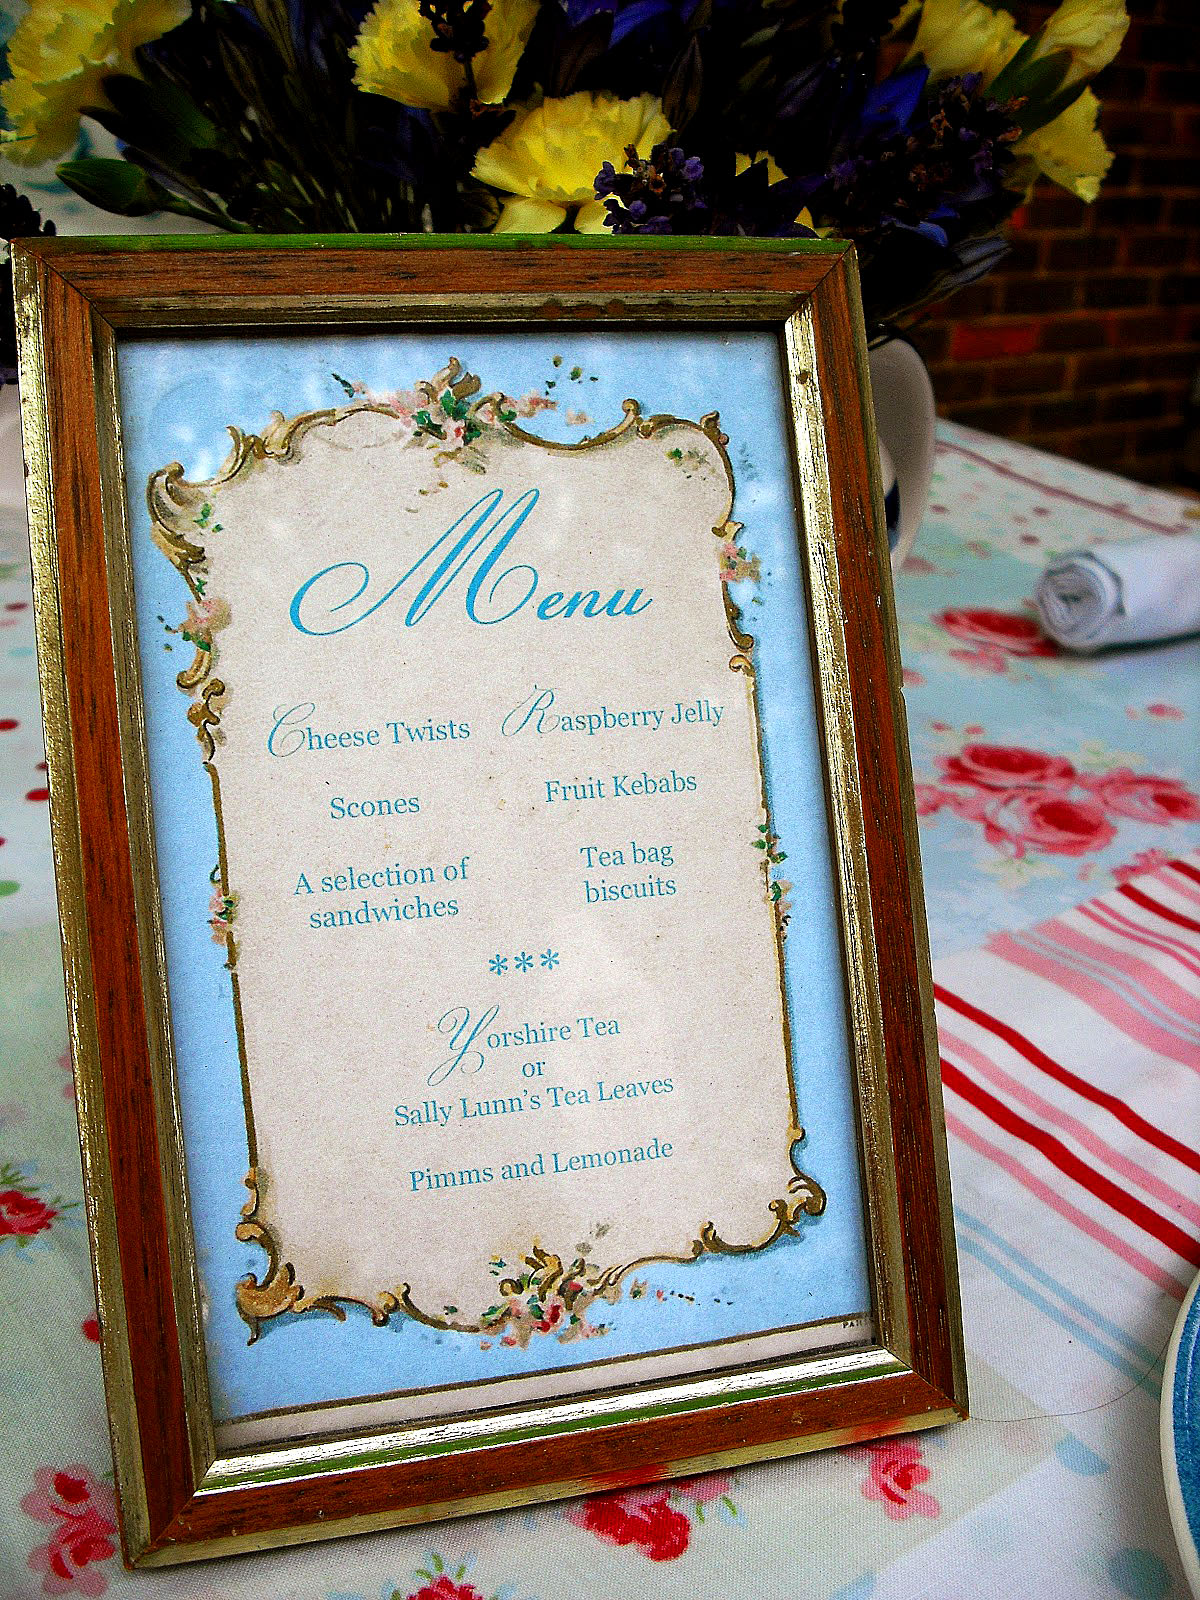 Brag Monday - Script Organizer and French Tea Party Menu - The ...